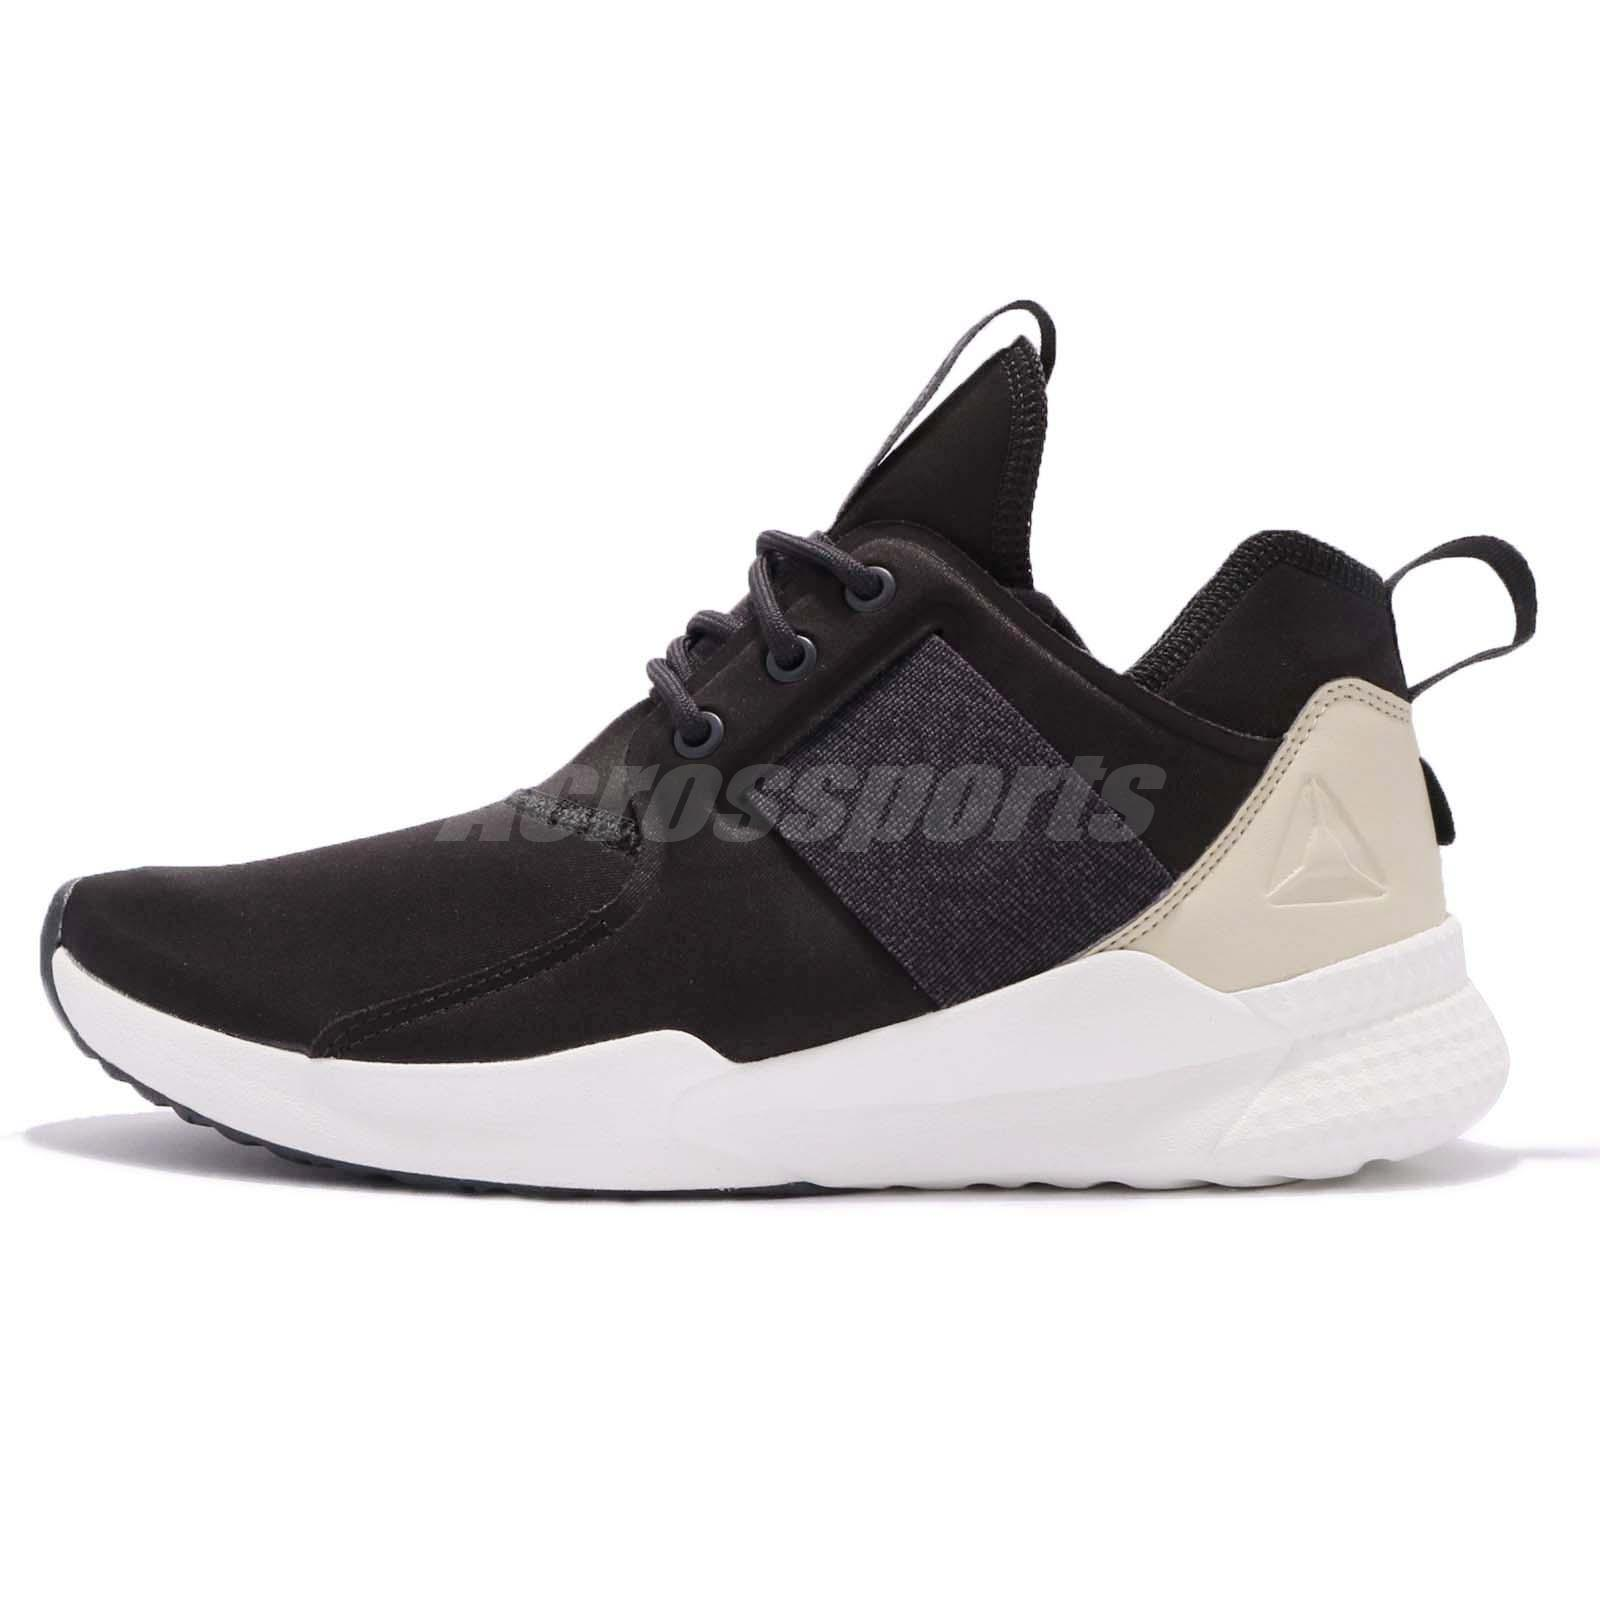 e1f593ab0ff Reebok Guresu 1.0 Black Ivory Women Cross Training Dance Shoes Sneakers  CN0716